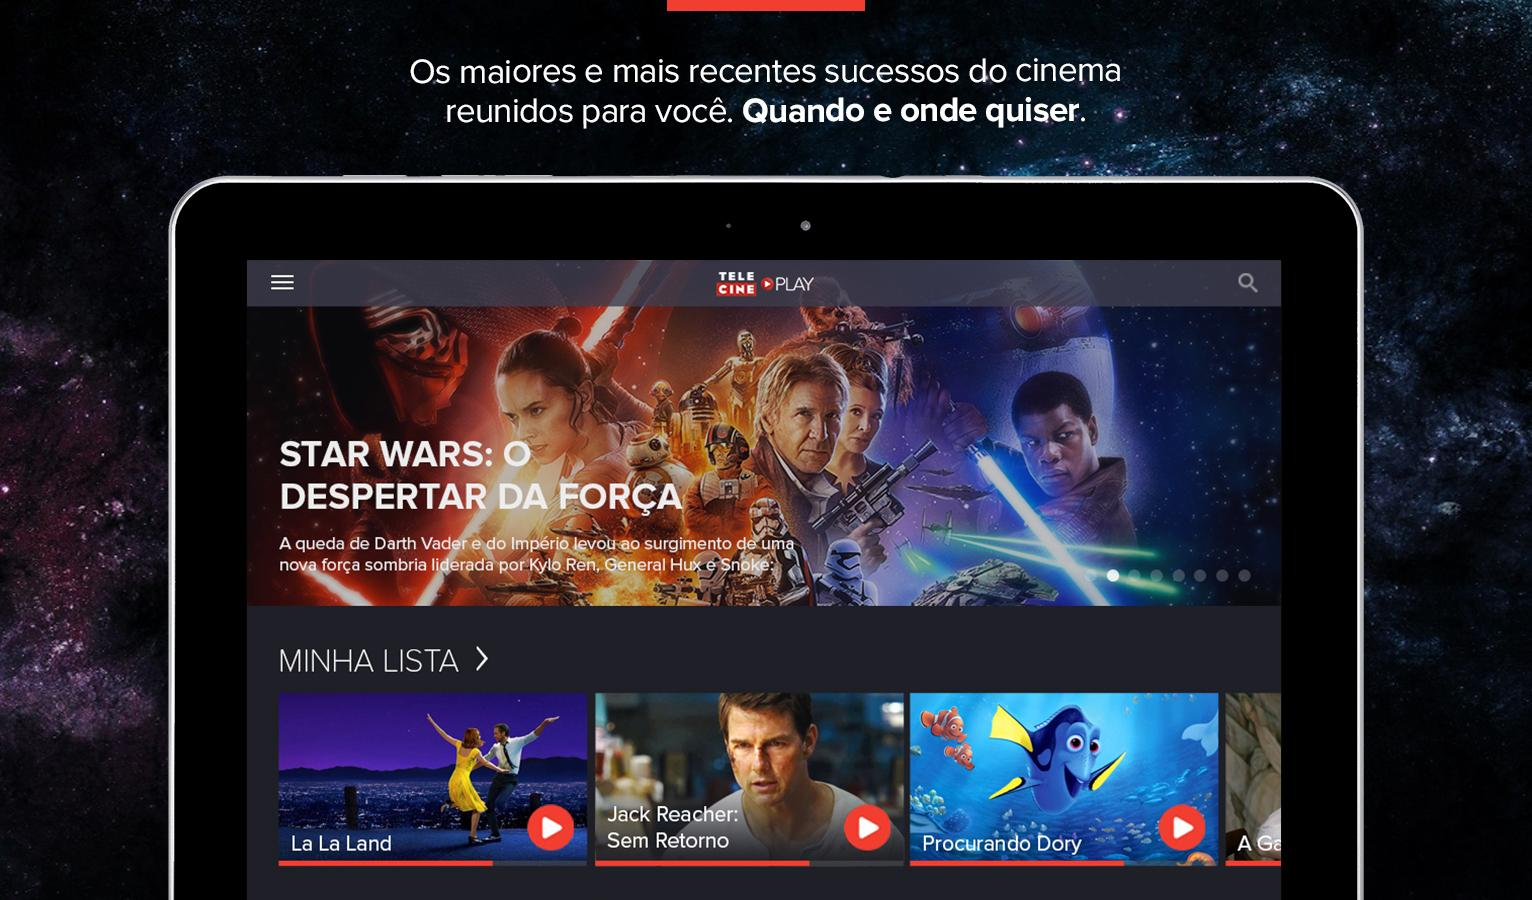 telecine play - filmes online 3.0.149 apk download - android